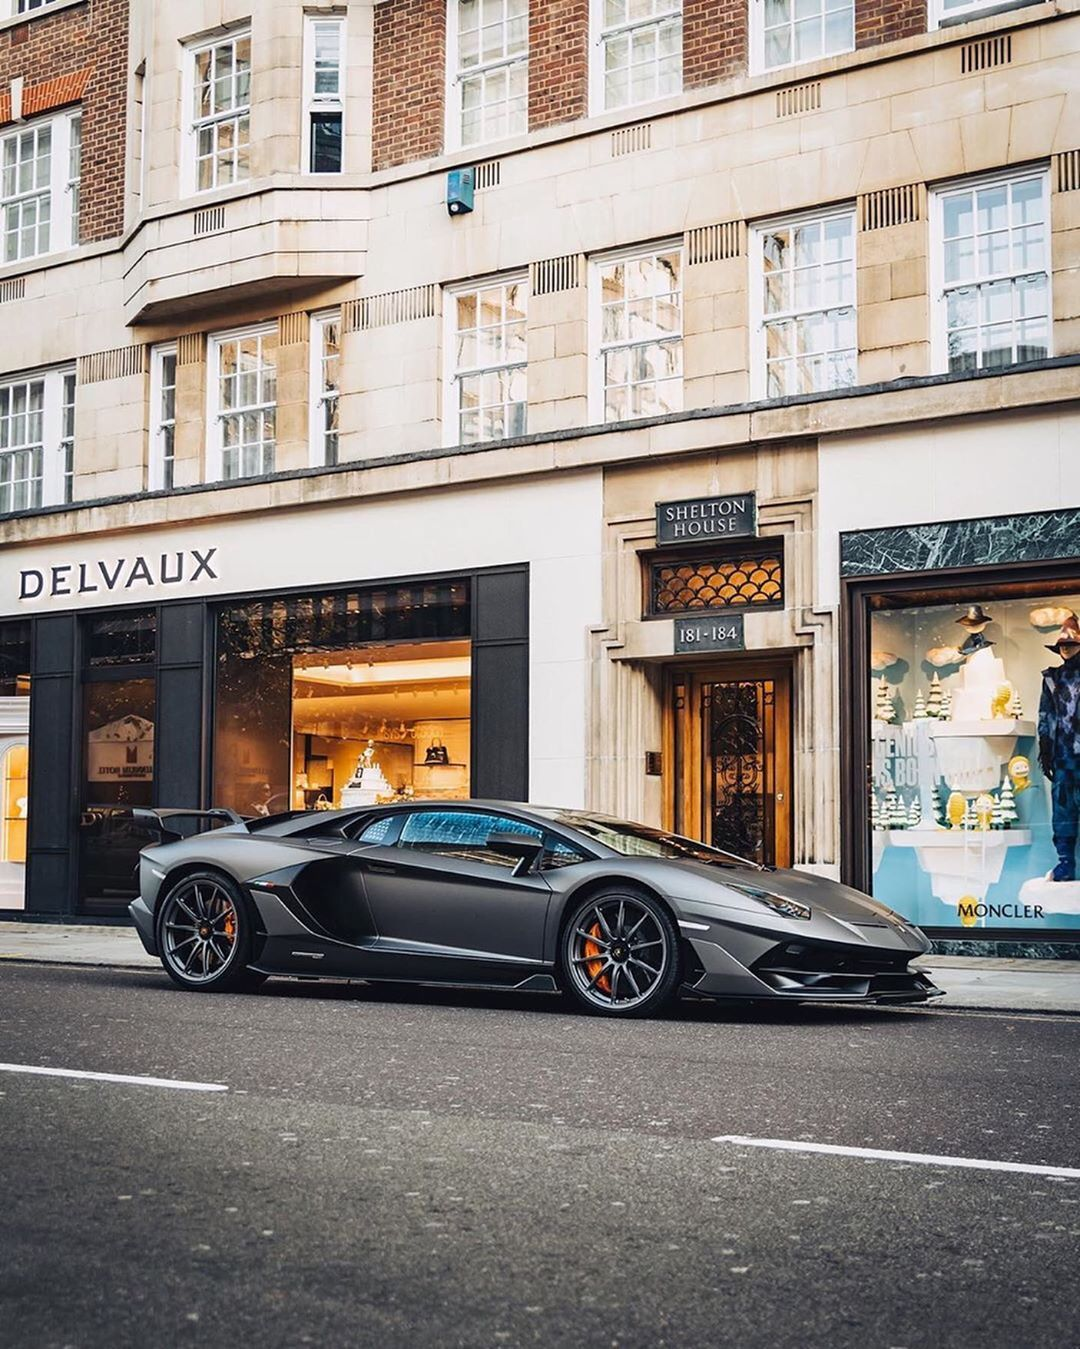 1 647 Likes 40 Comments Supercars Topdrift Topdrft On Instagram What Car Would You Drive In Your City 1 Super Cars Best Luxury Cars Lamborghini